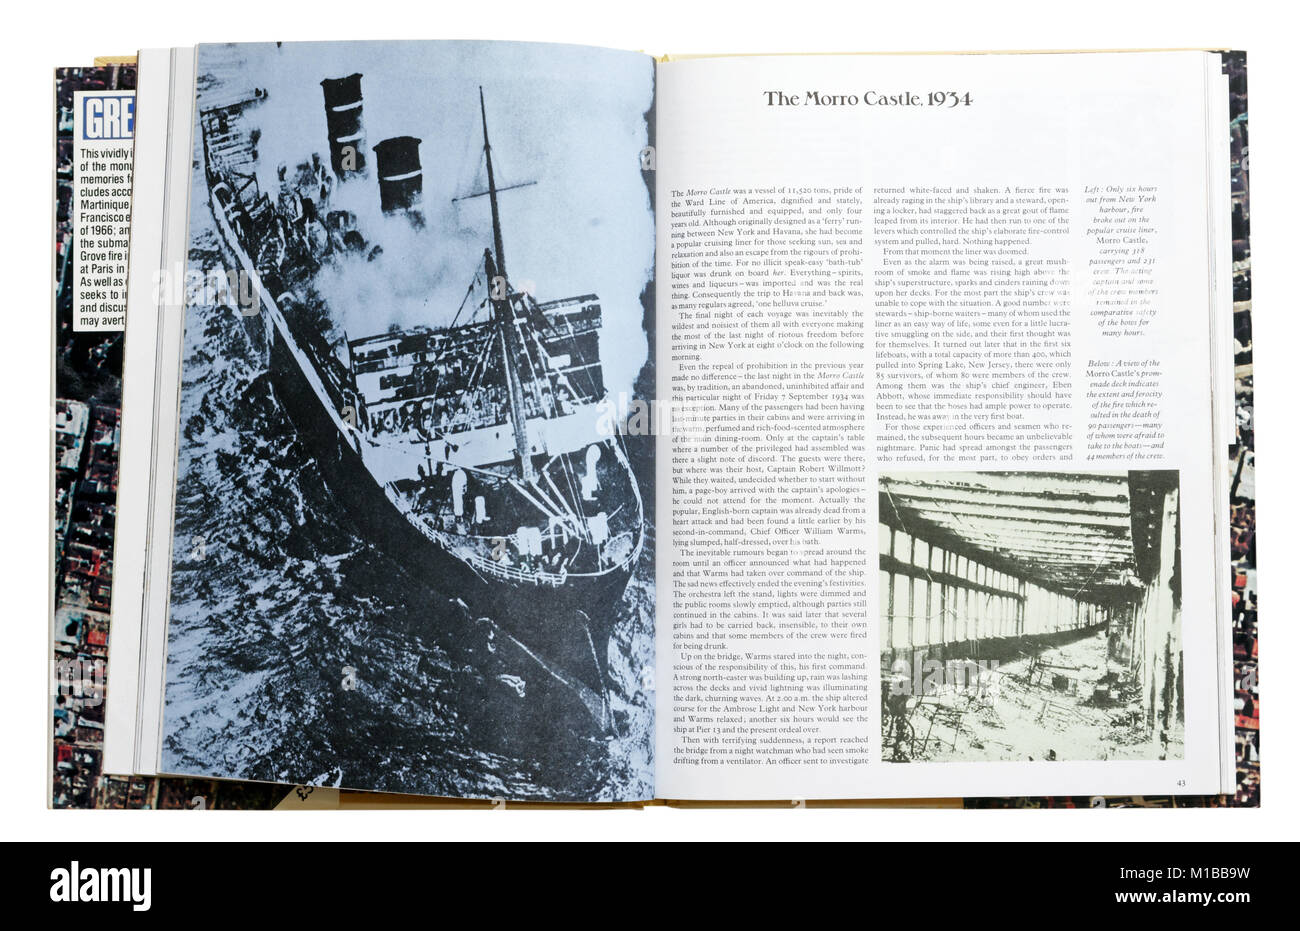 A book of disasters open to the page about the Morro Castle cruise liner fire - Stock Image